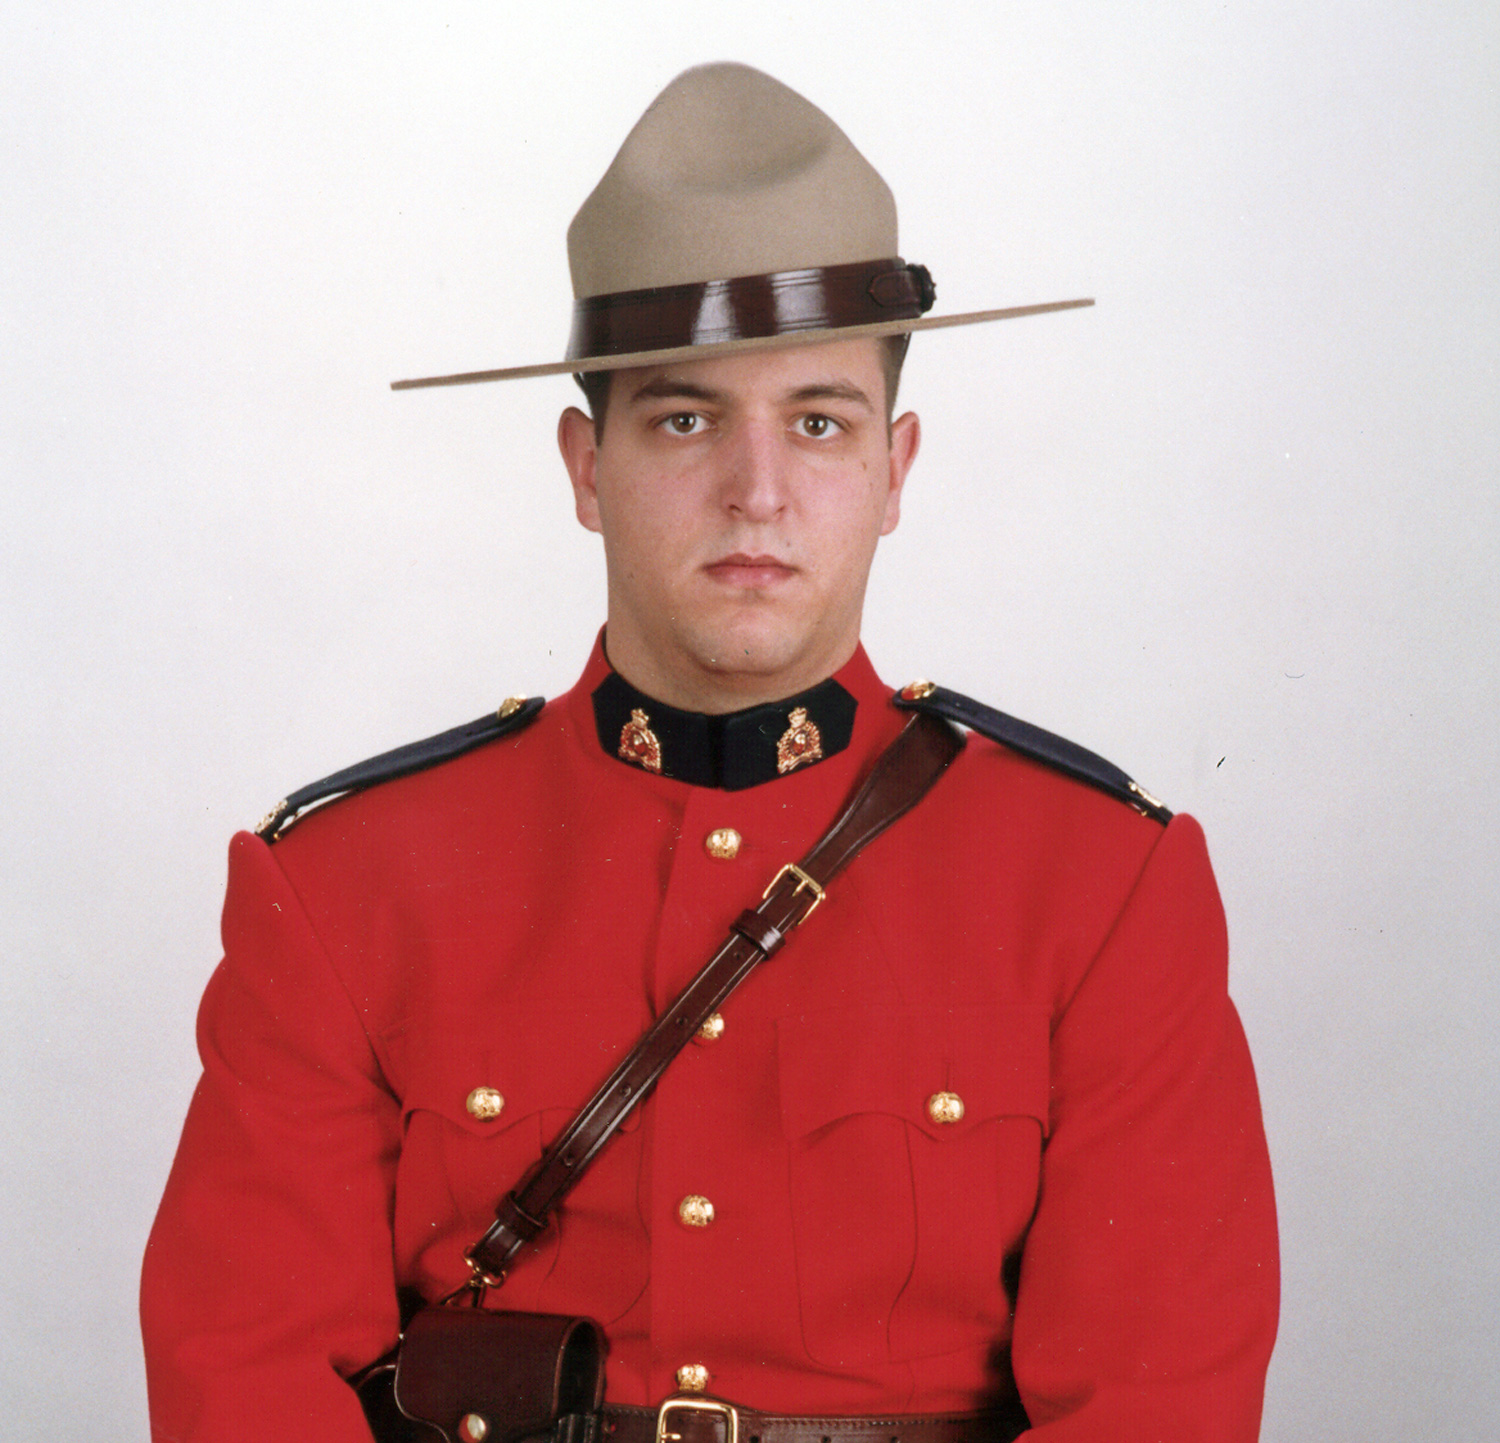 Constable Marc Joseph Denis Bourdages – © Her Majesty the Queen in Right of Canada as represented by the Royal Canadian Mounted Police